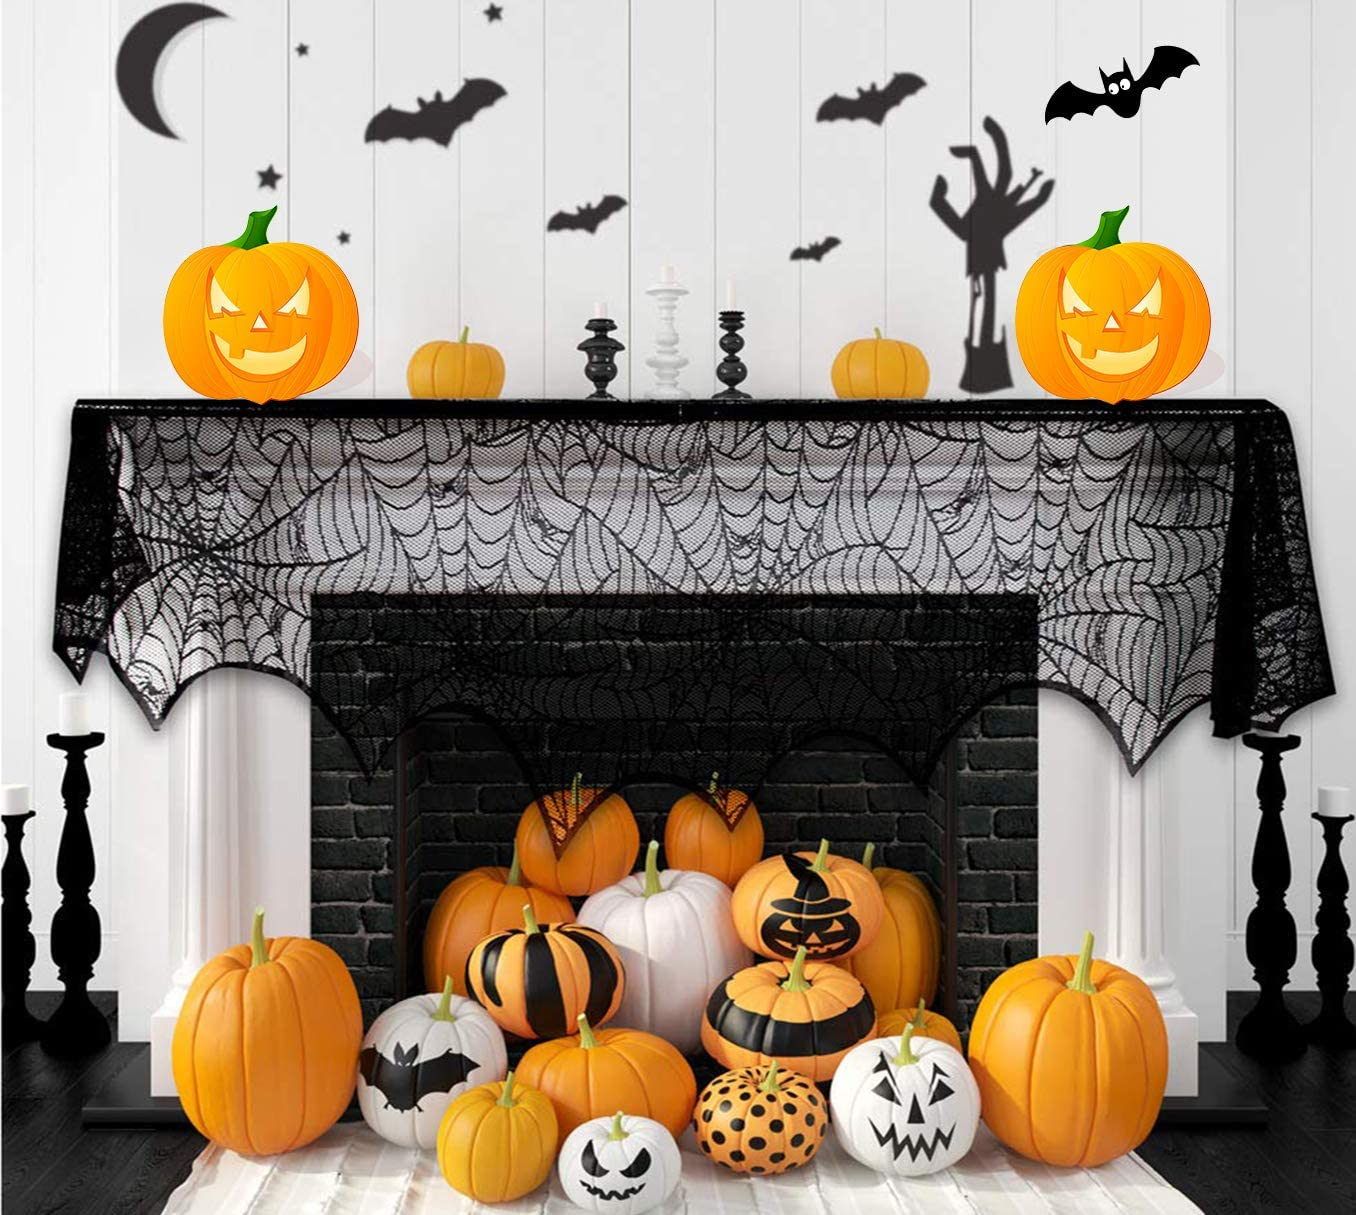 Halloween Fireplace Decorations, 18x96 Inch Black Lace Spiderweb Fireplace Mantle Scarf Cover, Cobweb Fireplace Scarf Decor Indoor Halloween Party Supplies